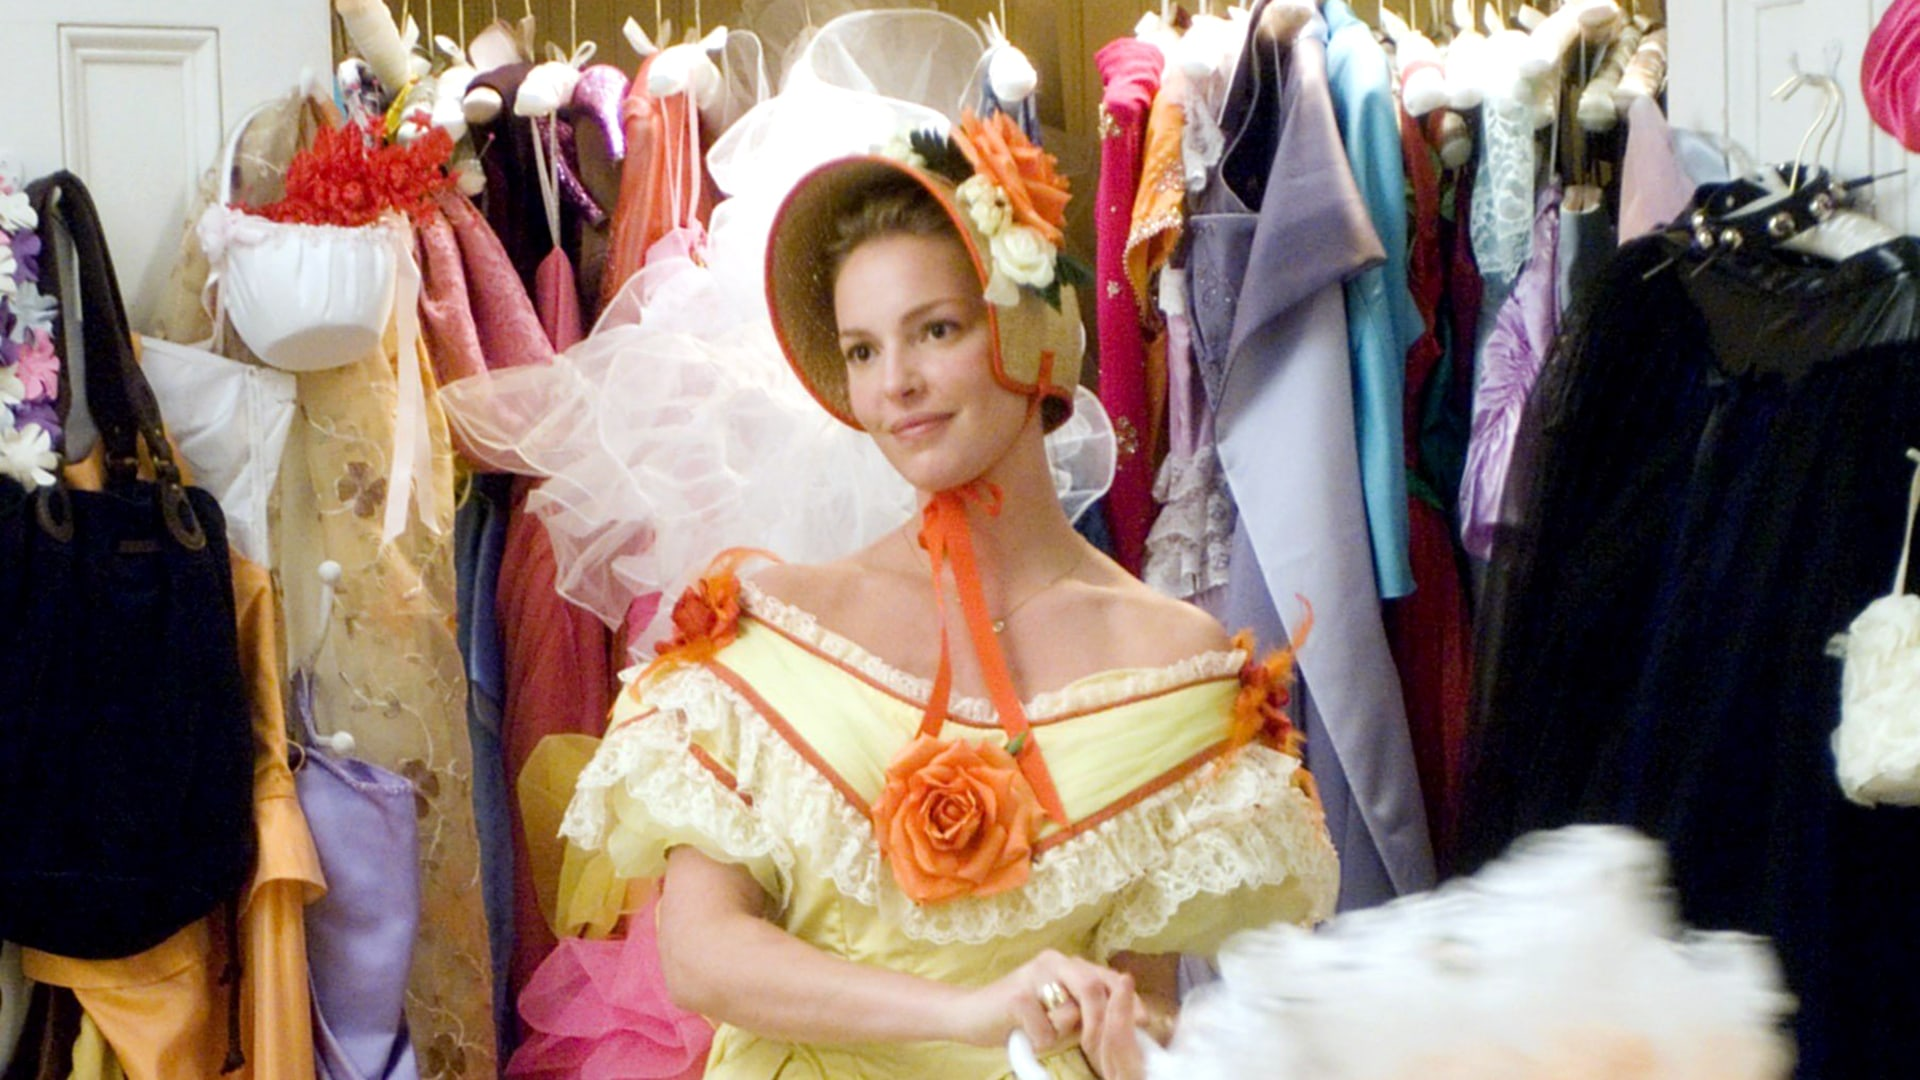 Image: 27 DRESSES, Katherine Heigl, 2008. TM &©20th Century Fox. All rights reserved/courtesy Everett Colle